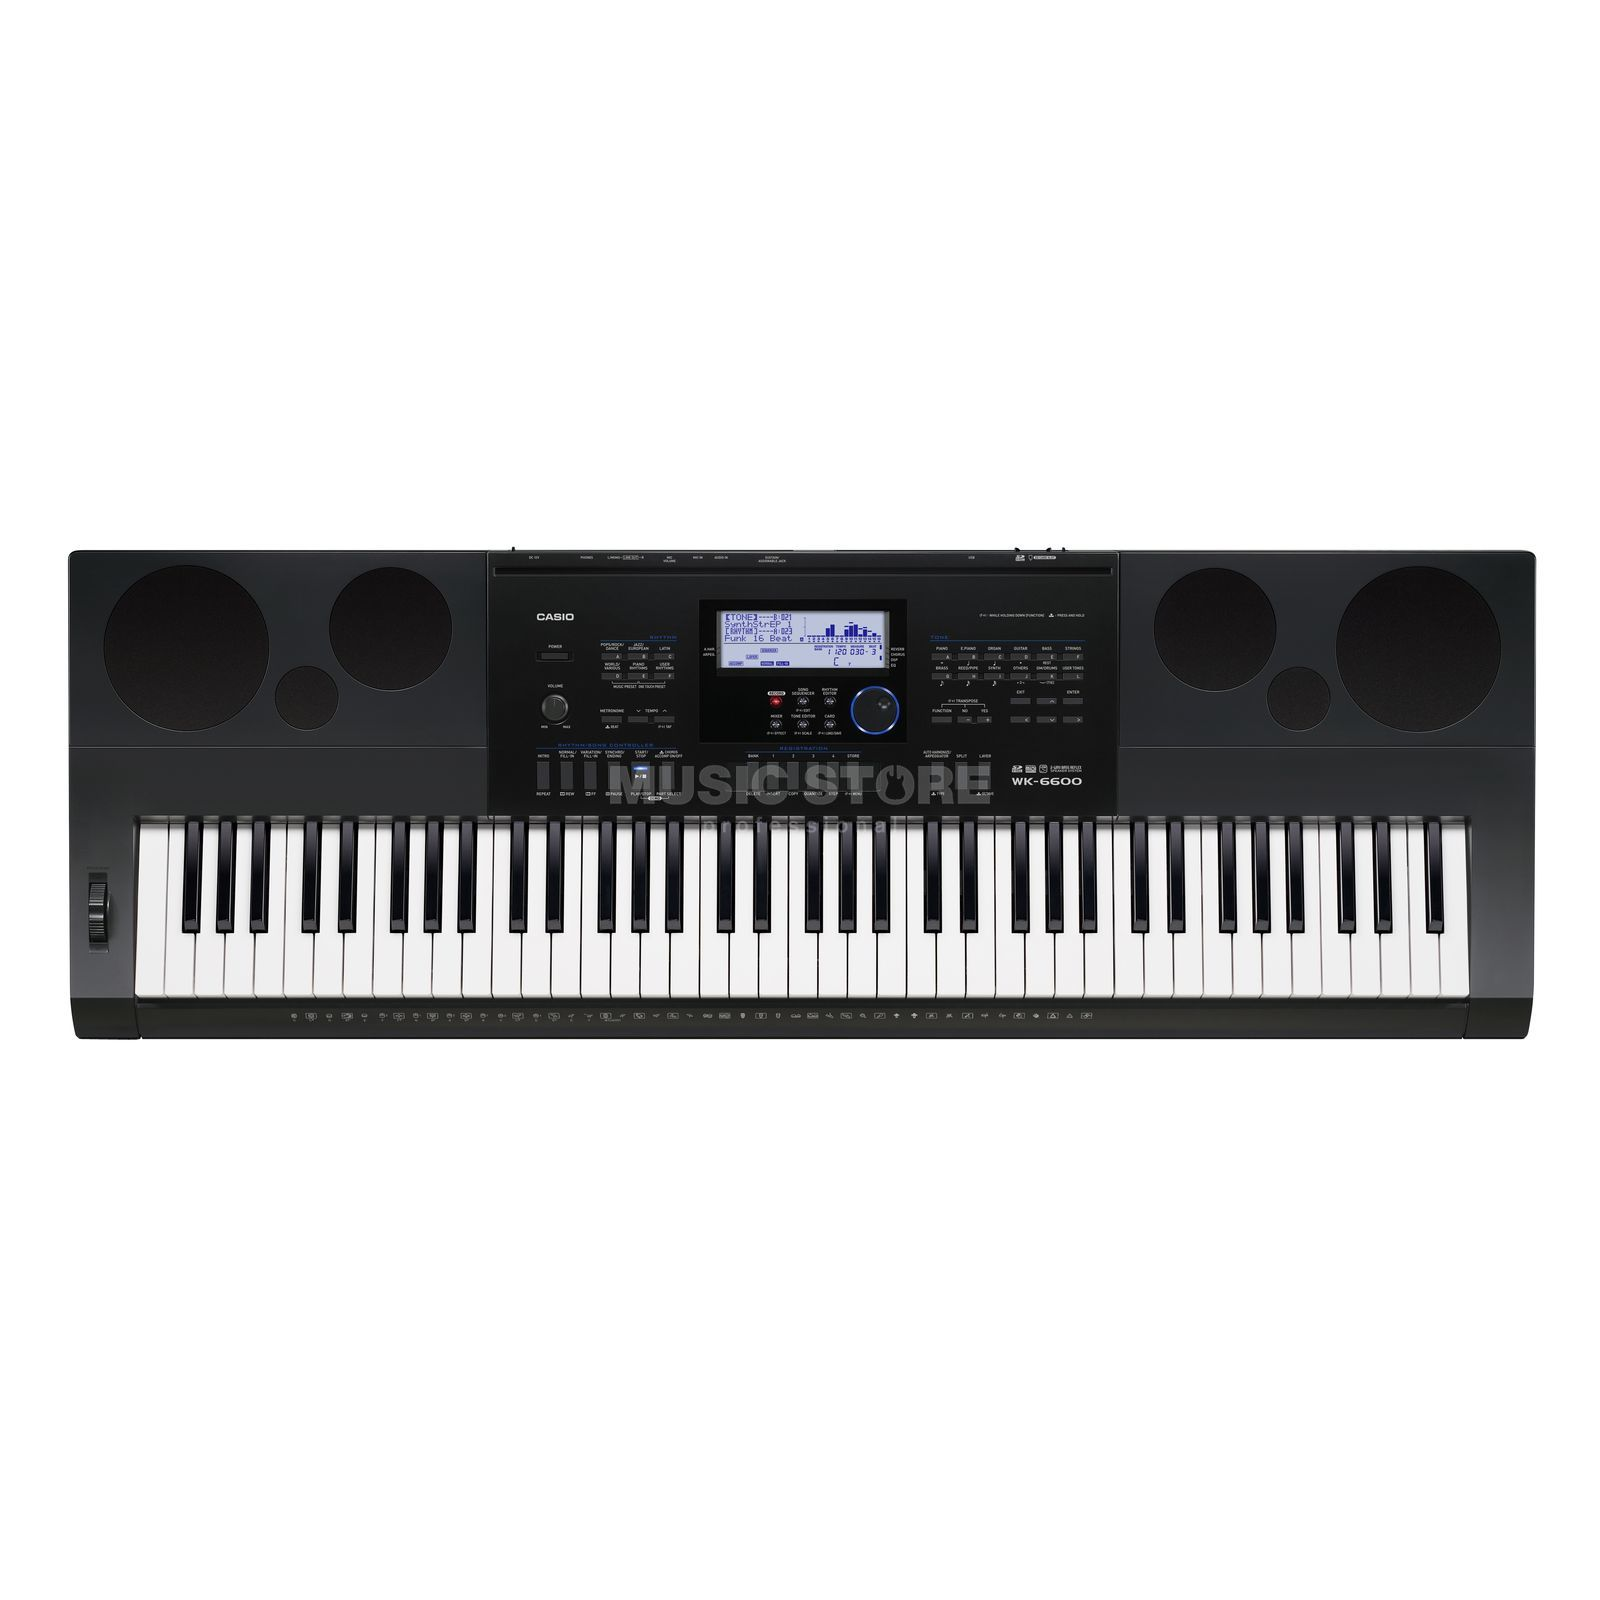 Casio WK-6600 Keyboard Produktbild